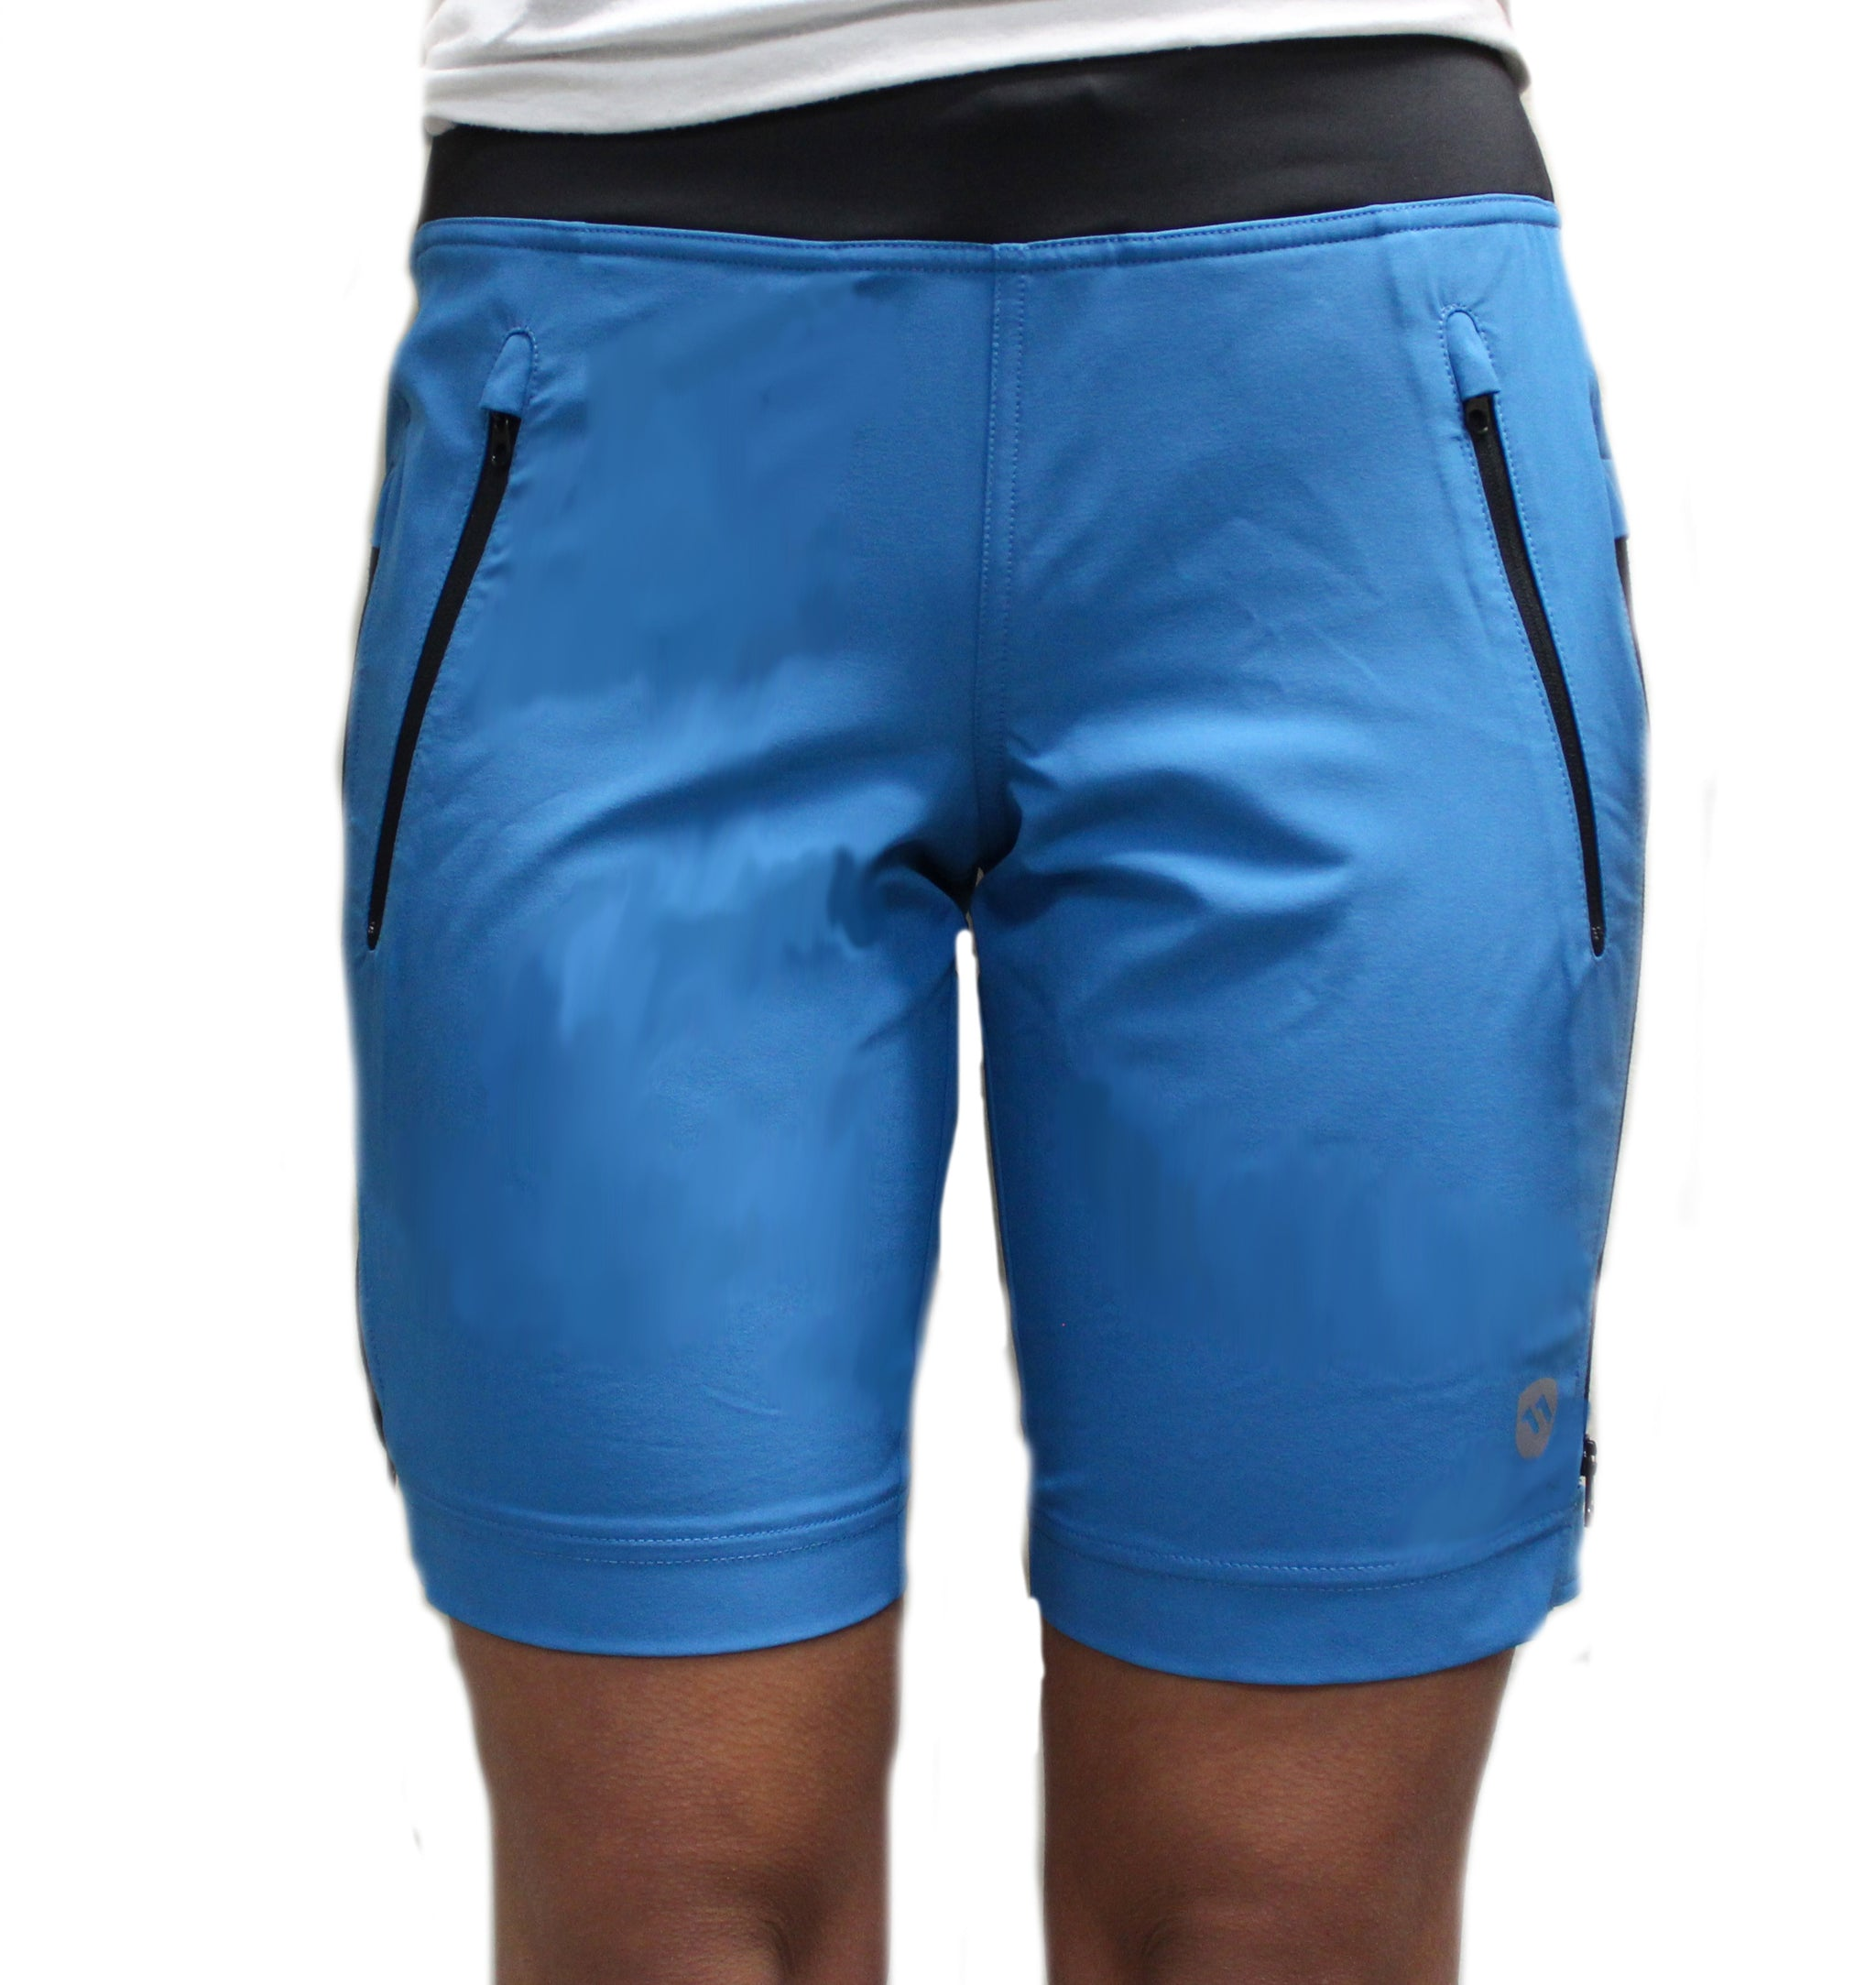 COMBO DEAL: Women's Centennial Blue Uprising Short with Liberator Liner